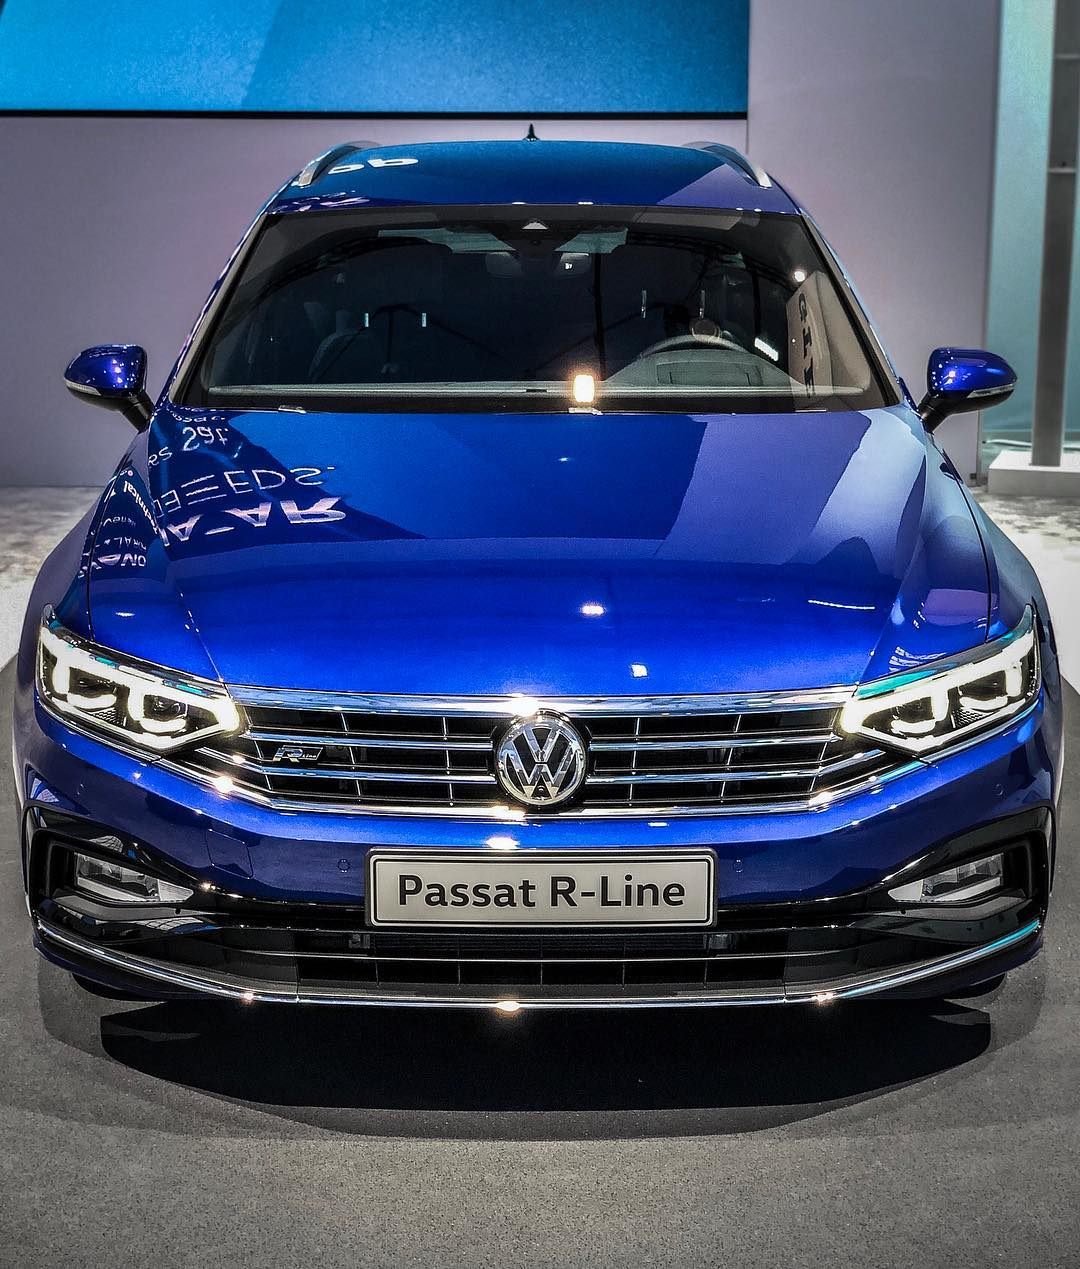 "Passat R-Line Facelift🤩…This ""Quad-Exhaust"" really looks mean😈…and connectivity specs above Touareg definitely make this a serious option again🧐😬 #volkswagen #vw #vwpassat #vwpassatb8 #passatb8 #passatb8facelift #passatfacelift #passatrline #rline #passat2019 #automanntv"